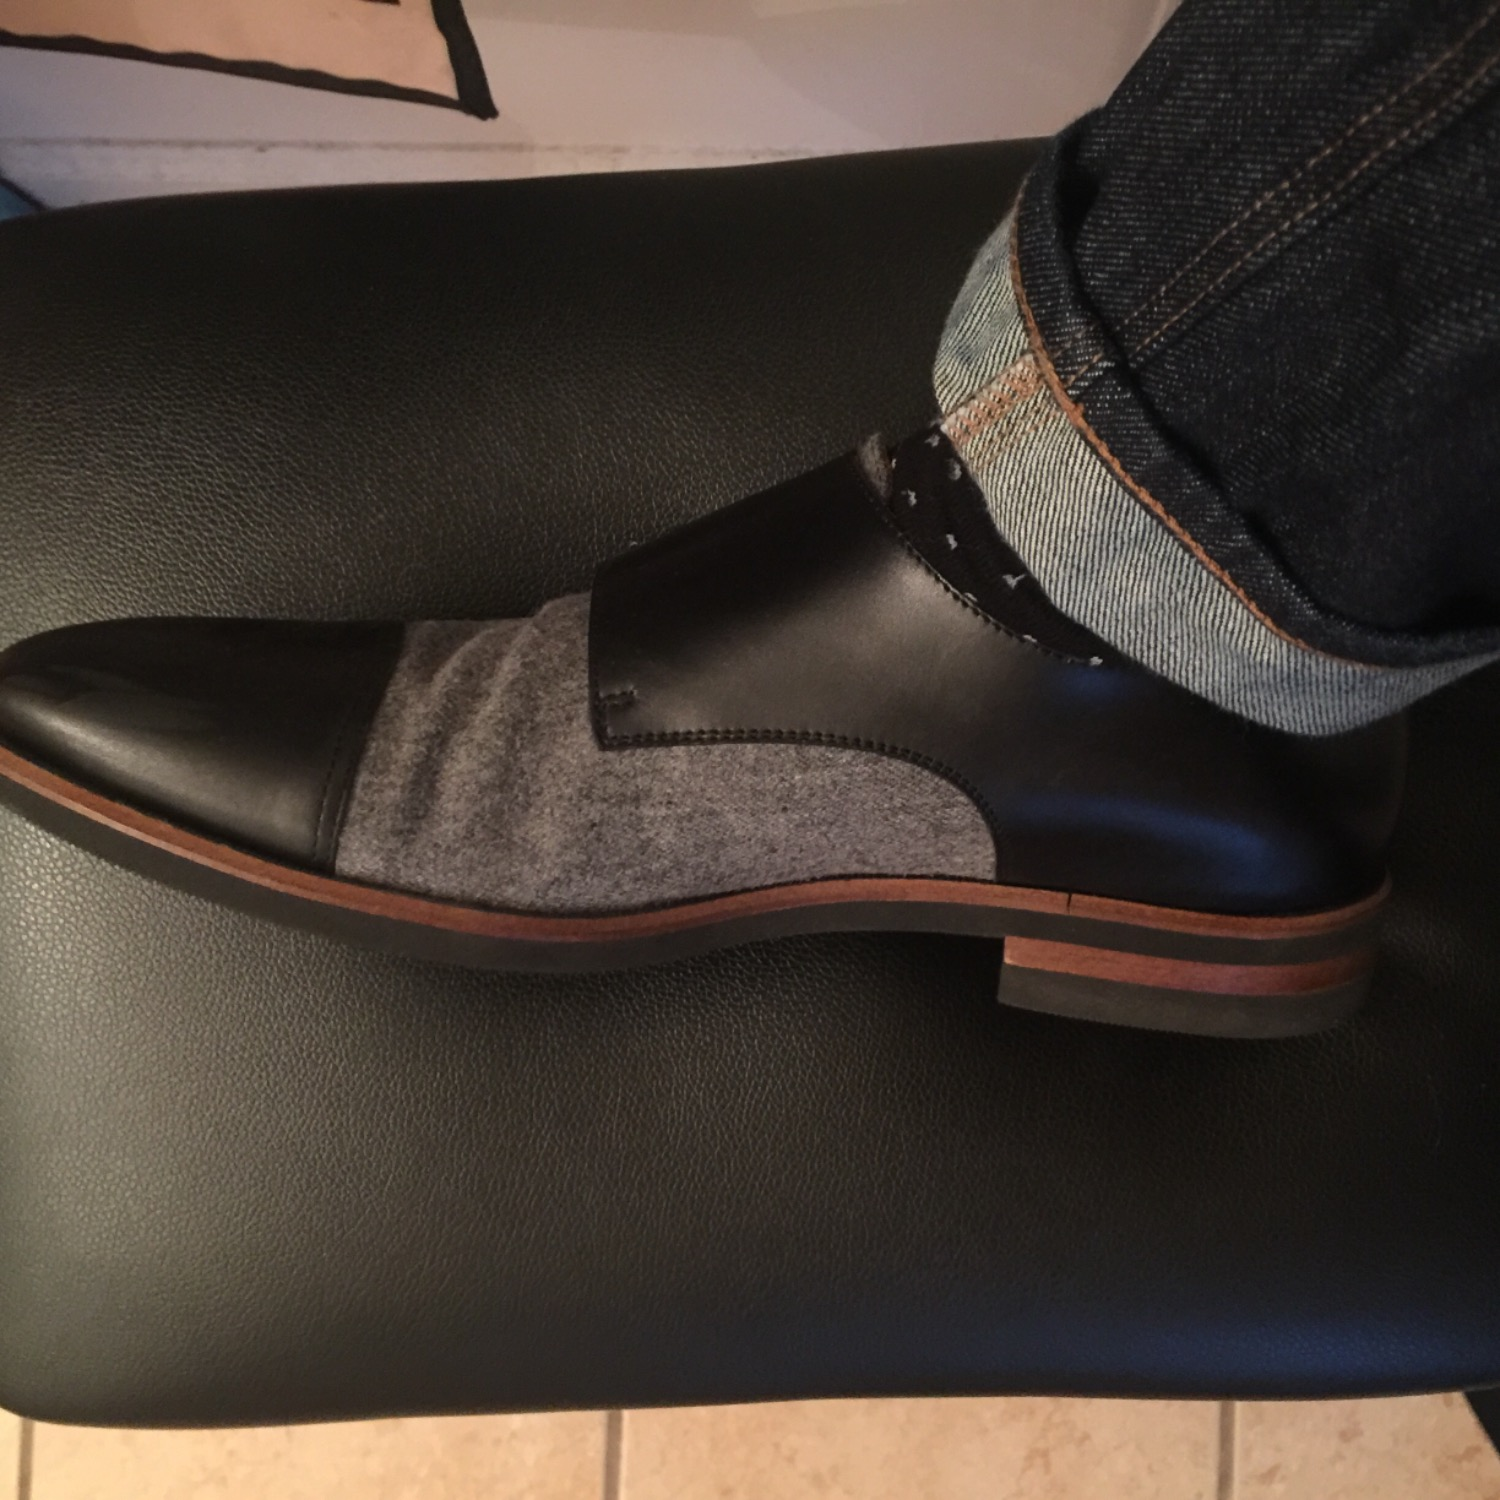 4acde53f438 Love the Calder in Black. This is my second Taft shoe and am loving it. I  get compliments for my Taft shoes all the time. After two months of wear